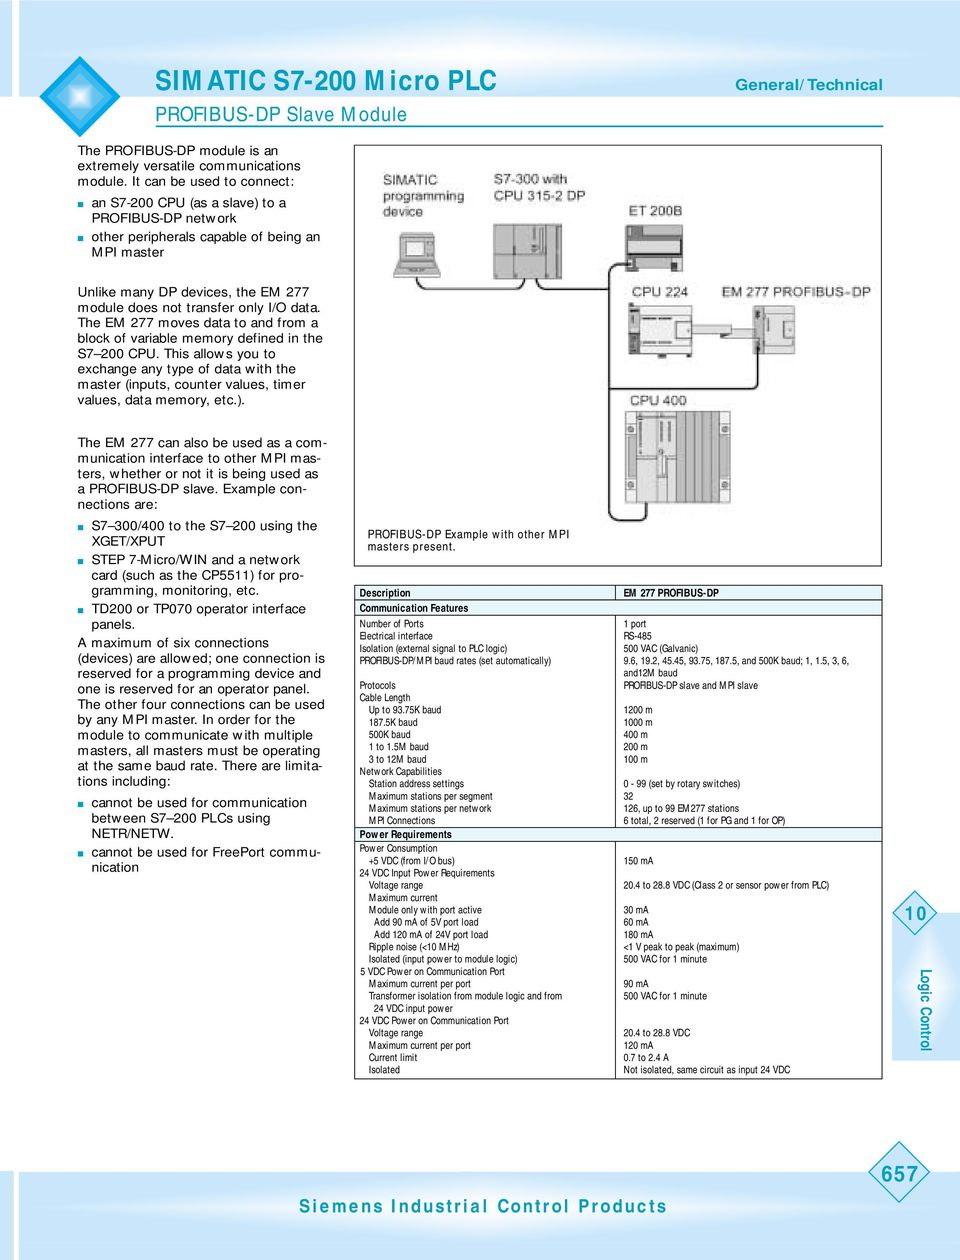 Plc S7 224 Wiring Diagram Simatic 200 Micro Pdf Data The Em 277 Moves To And From A Block Of Variable Memory Defined